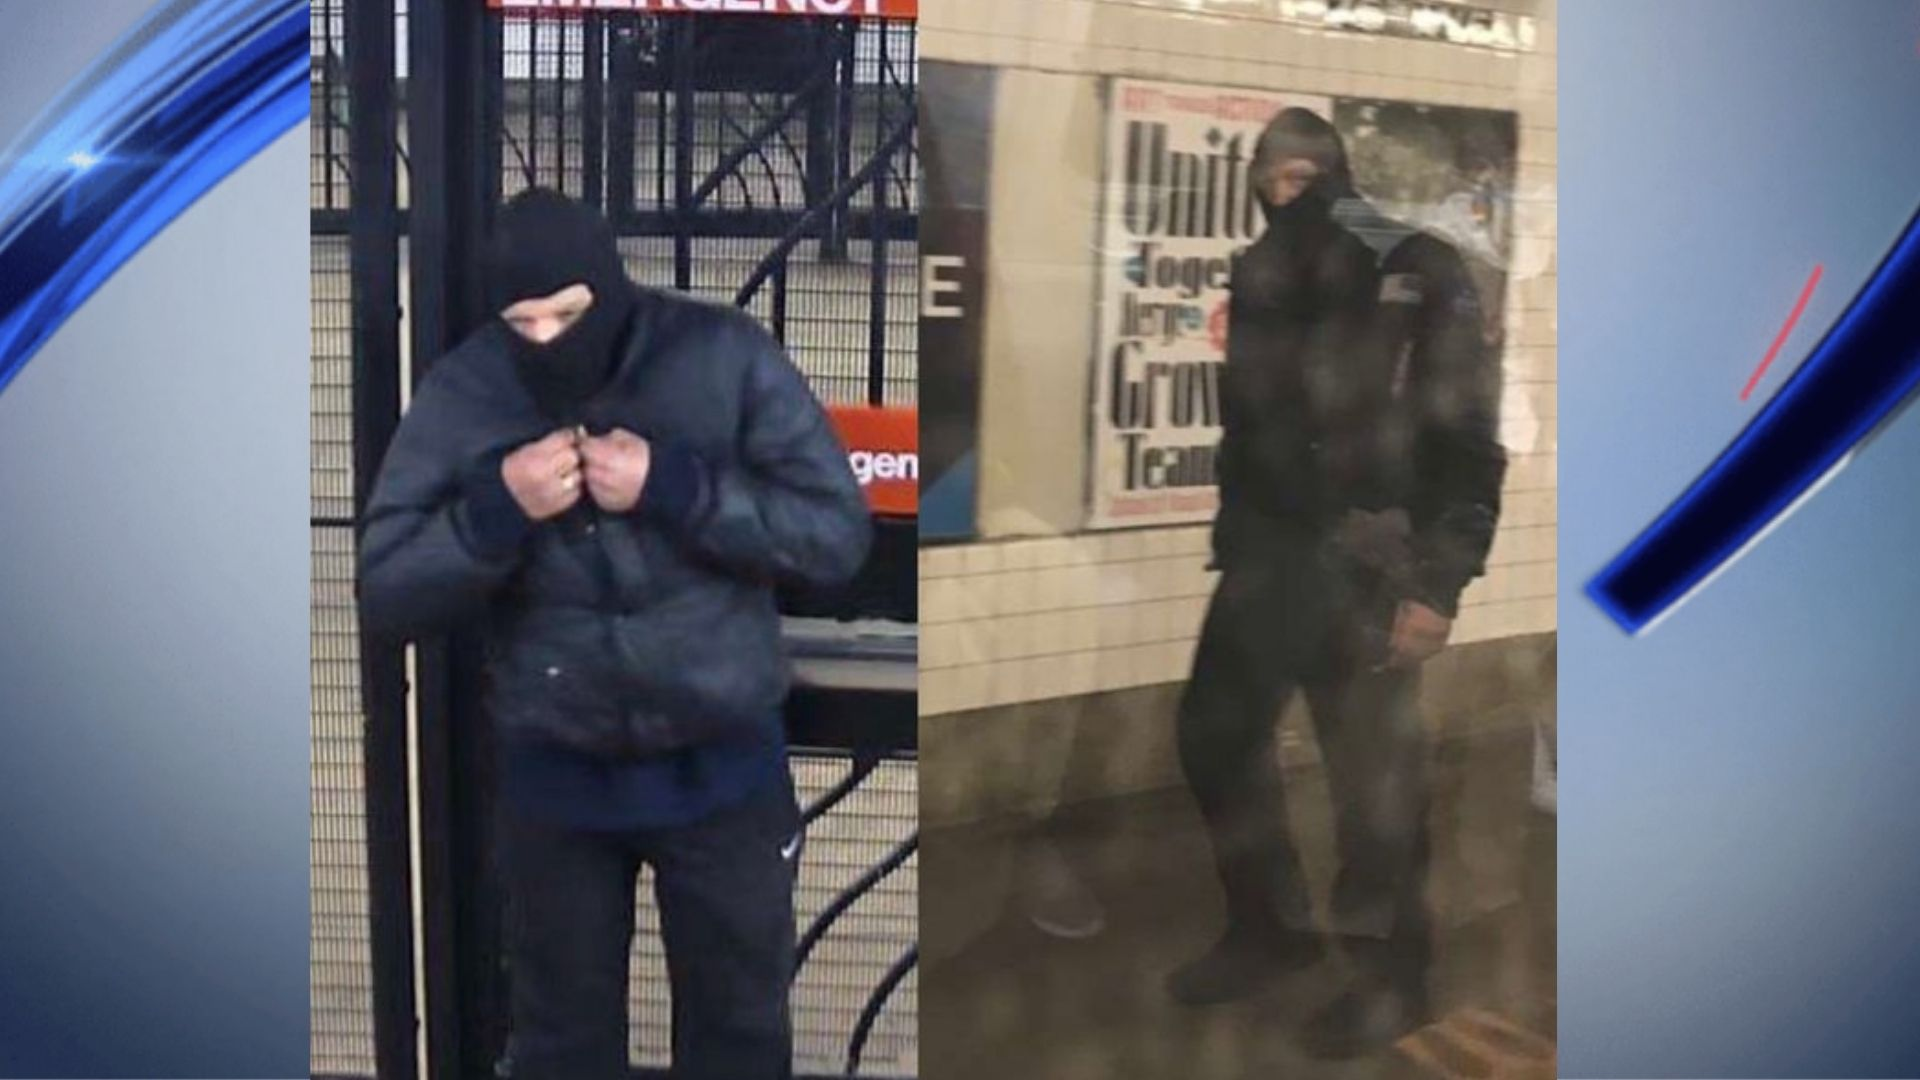 Surveillance images of a man accused of urinating on a woman aboard a subway on the F line in Queens on Saturday, March 20, 2021, according to police. (NYPD)